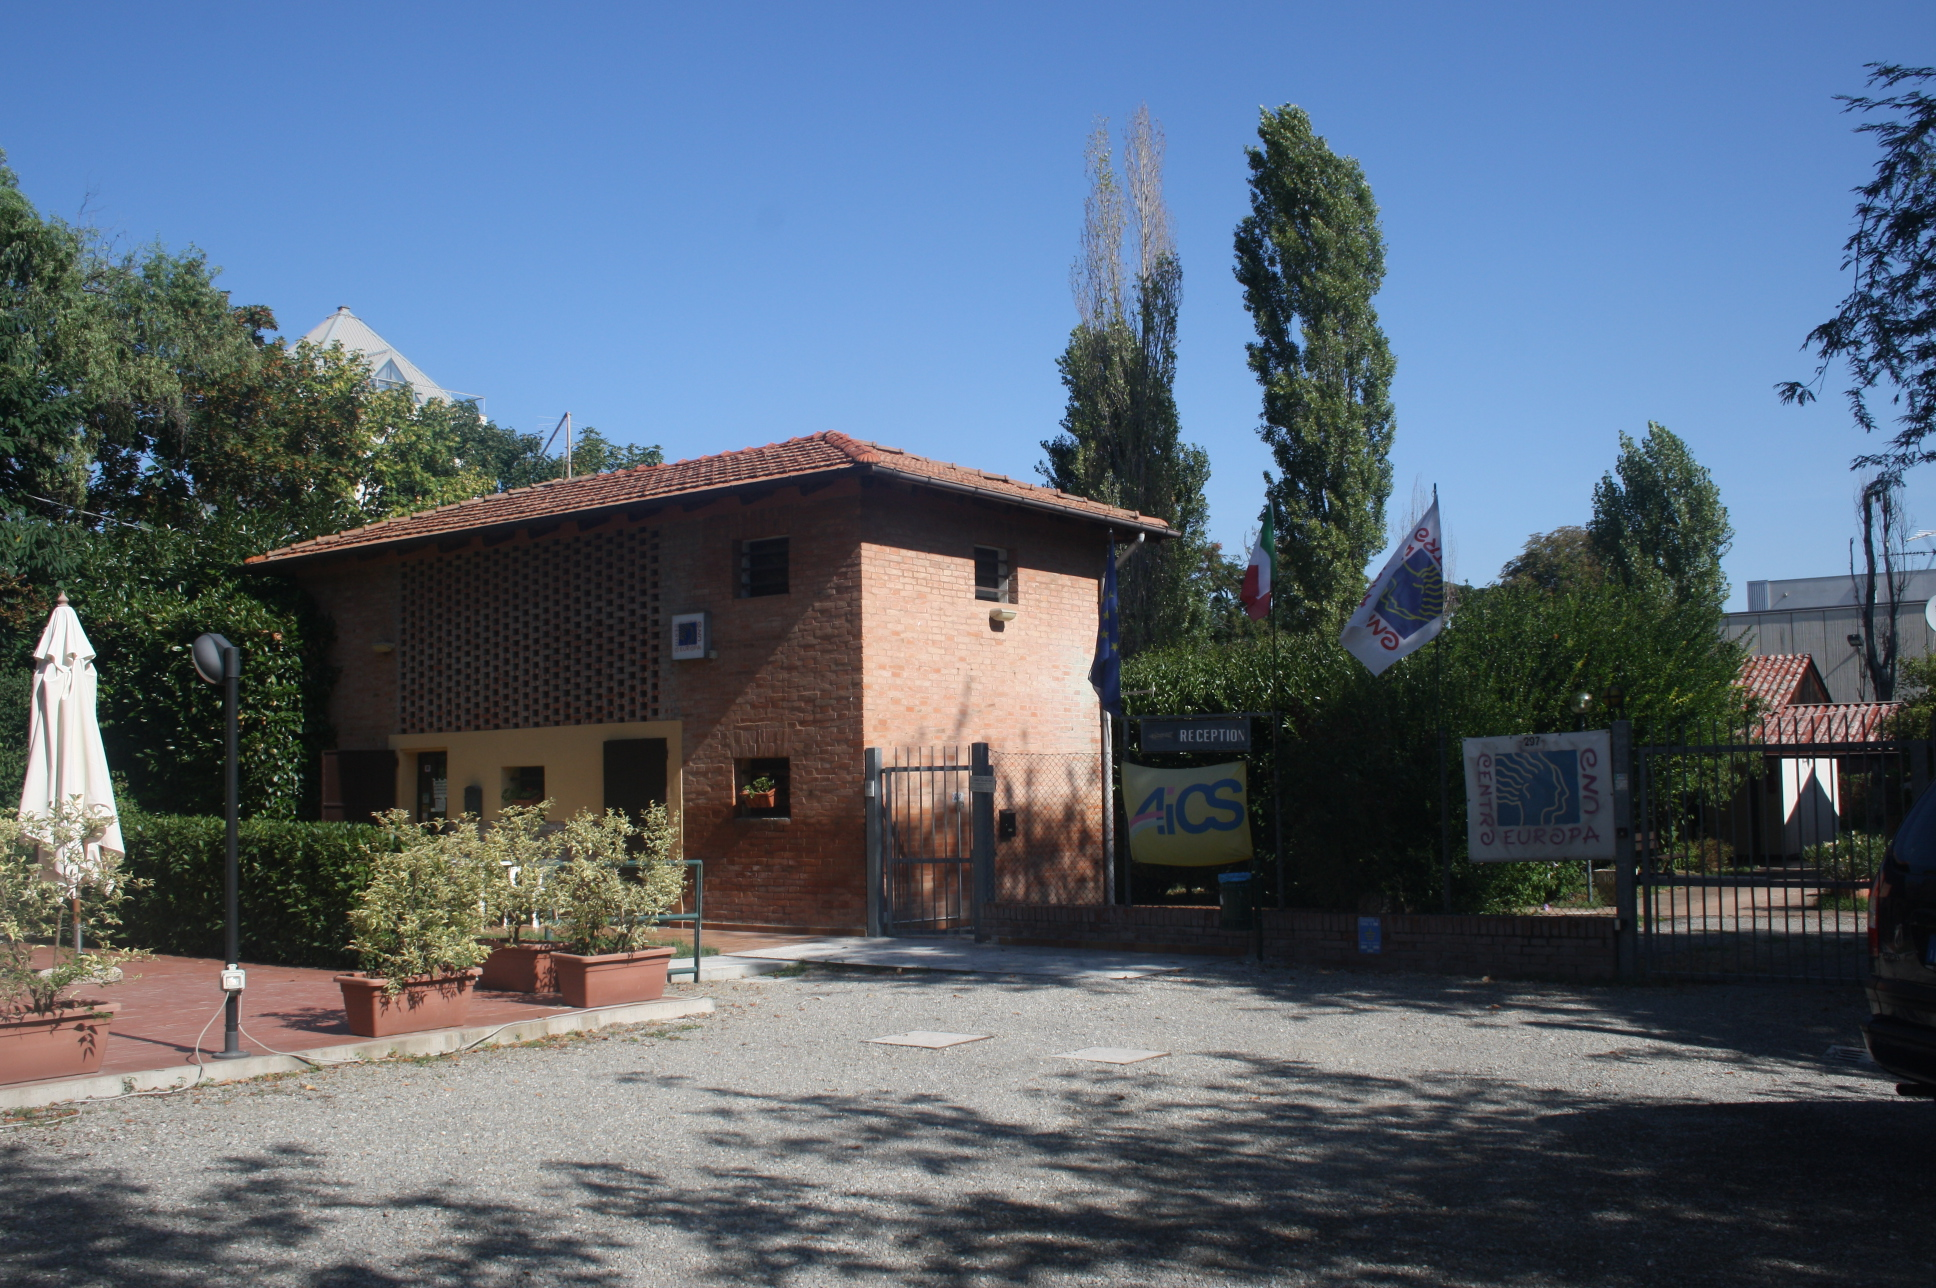 OSTELLO/CAMPING